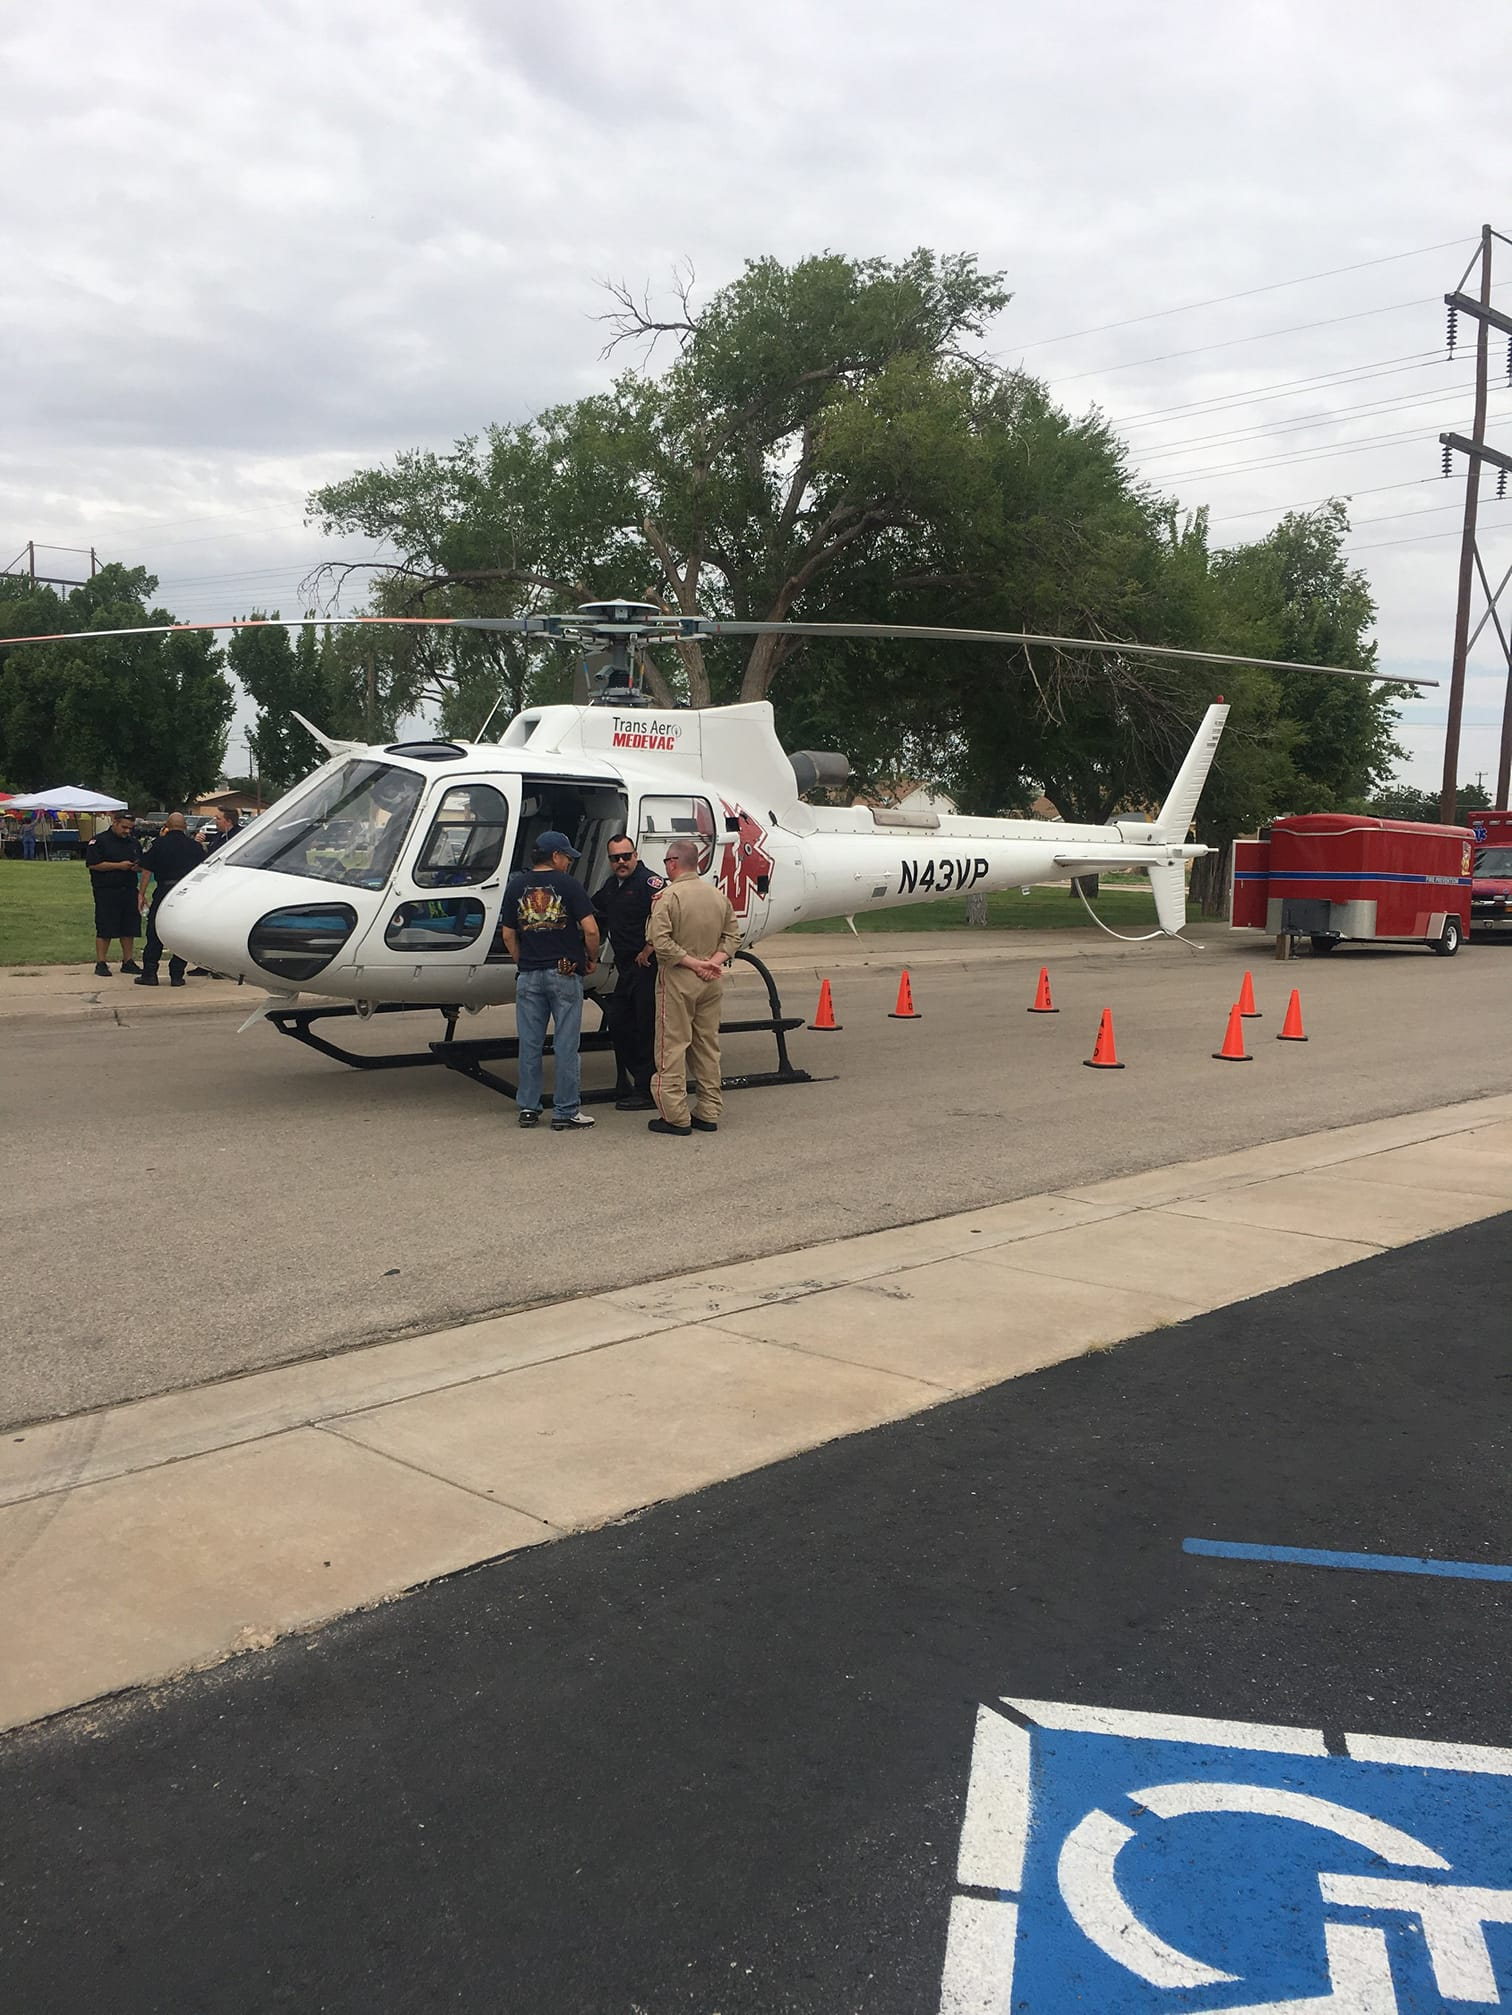 an h125 helicopter and crew sit at an event